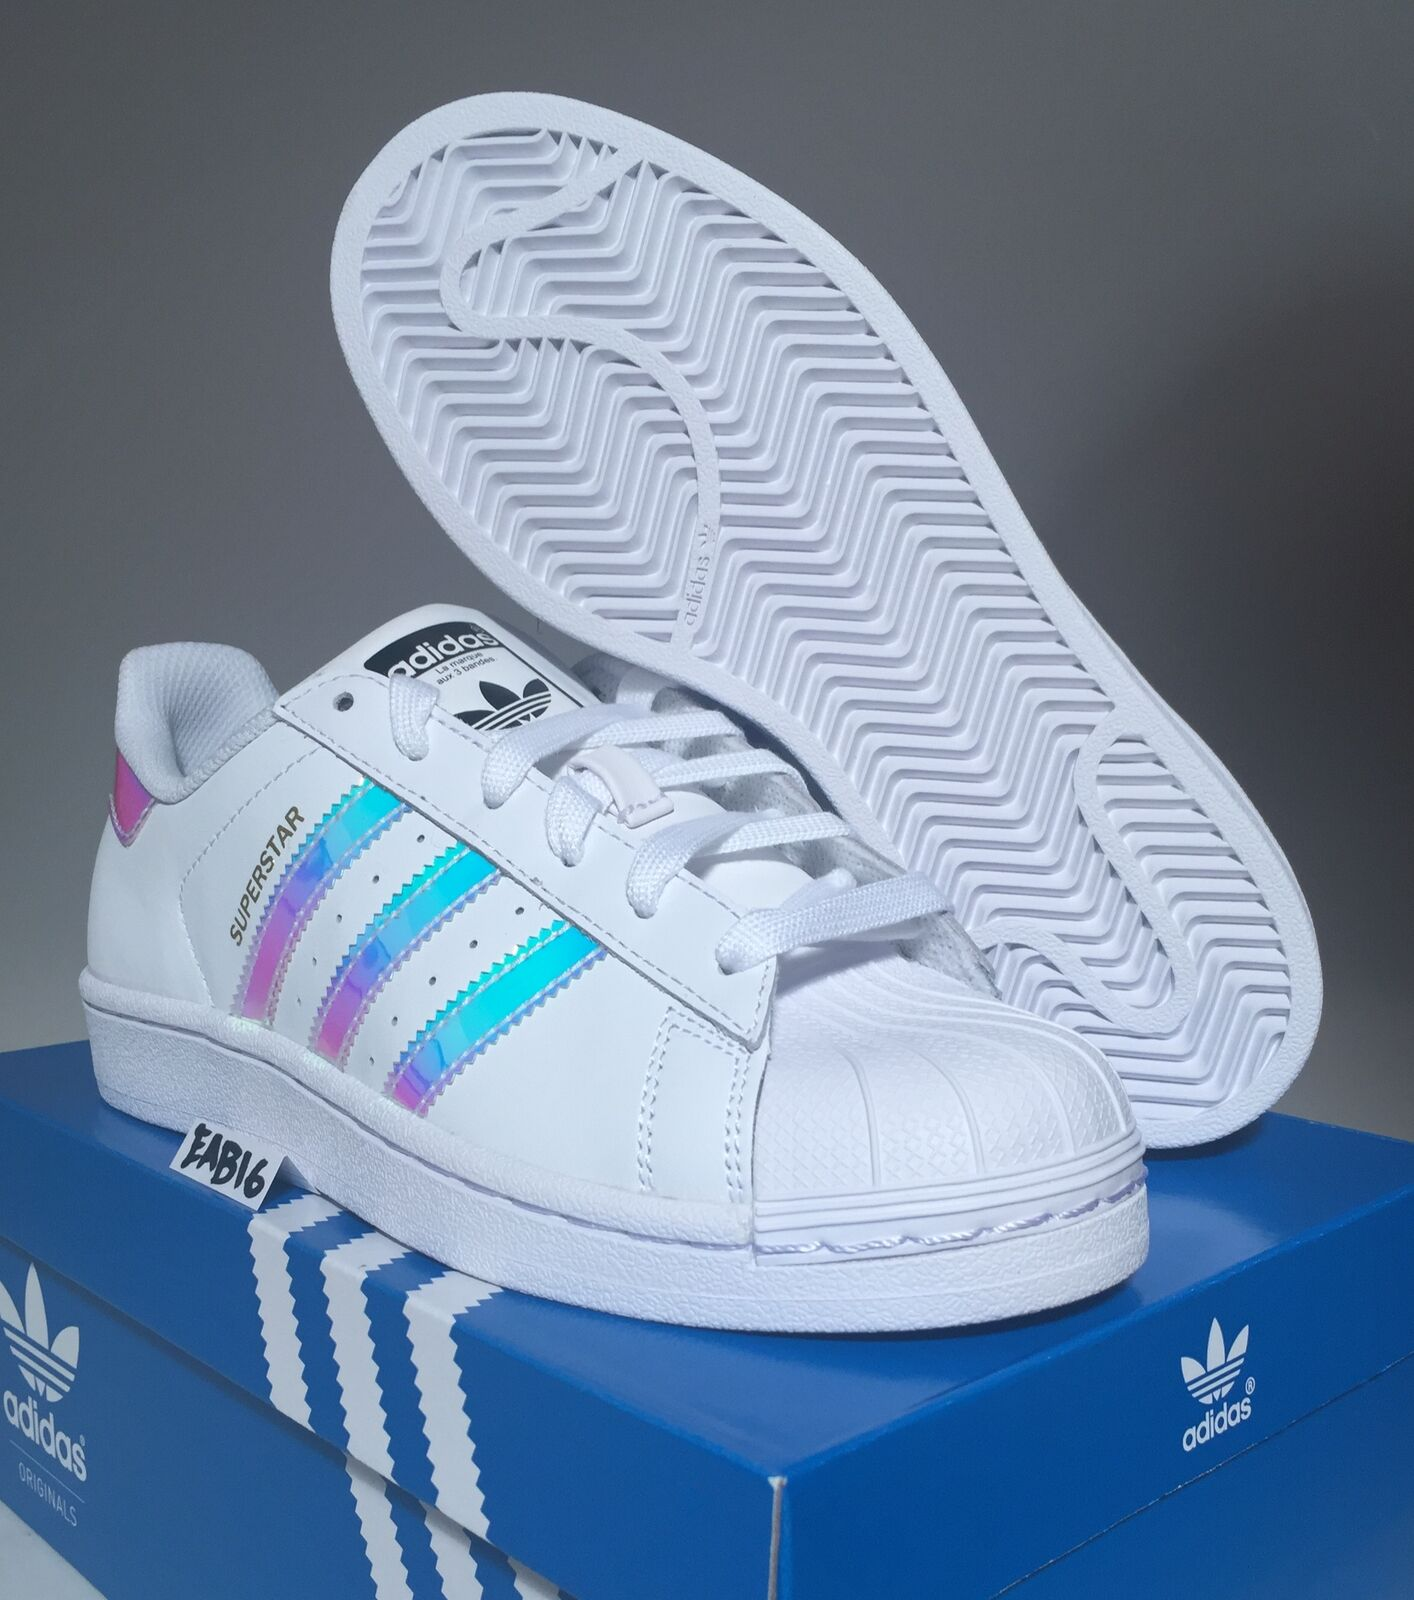 7ccc5516451 Обувь для мальчика Adidas Superstar J Junior Iridescent Hologram GS AQ6278  Boys Girls Shell Toe - 272242575252 - (США)